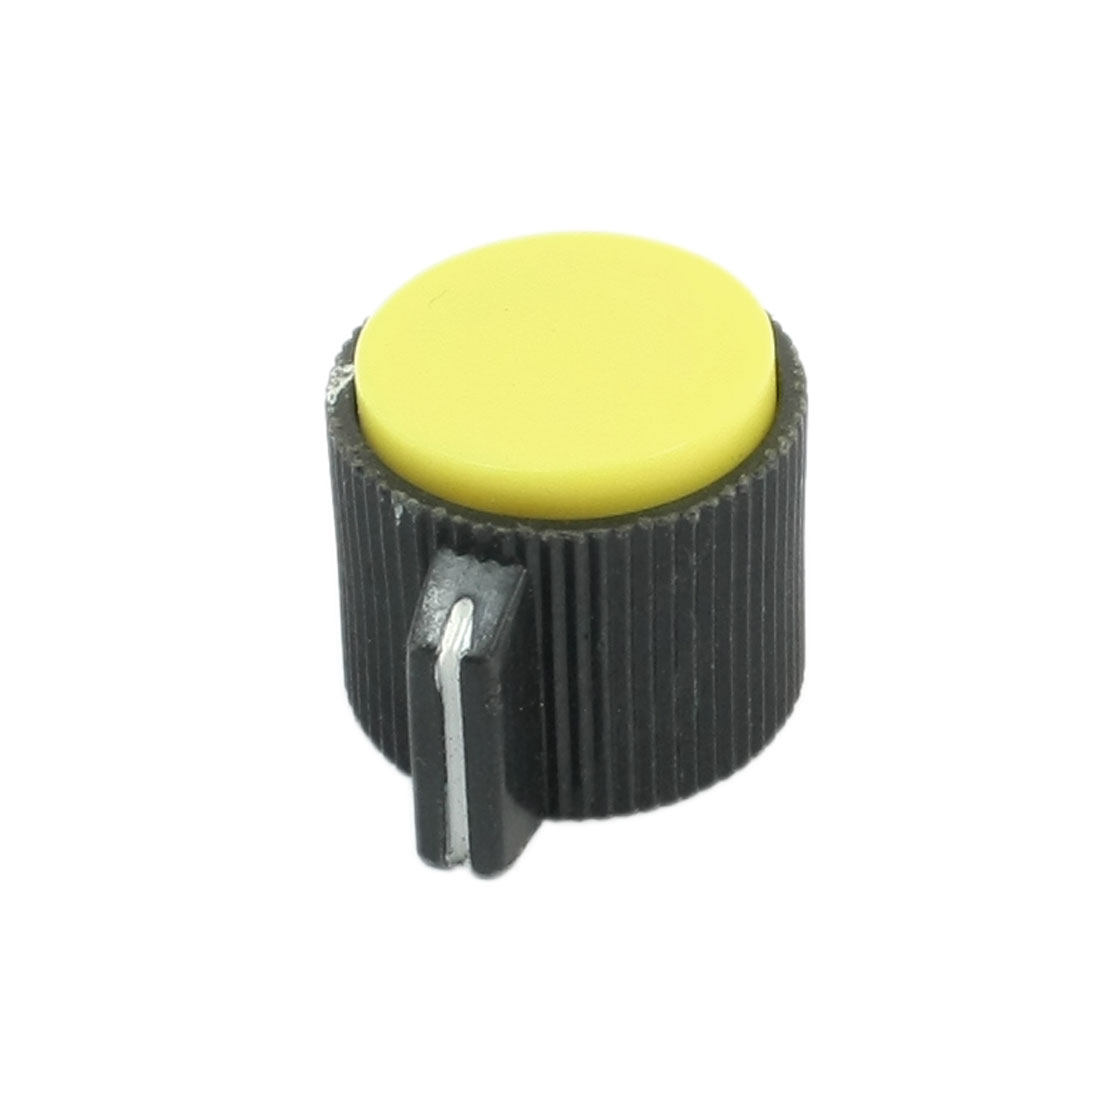 Plastic 6mm Shaft Dia Yellow Top Volume Knob Cap KN113 for Potentiometer Pot